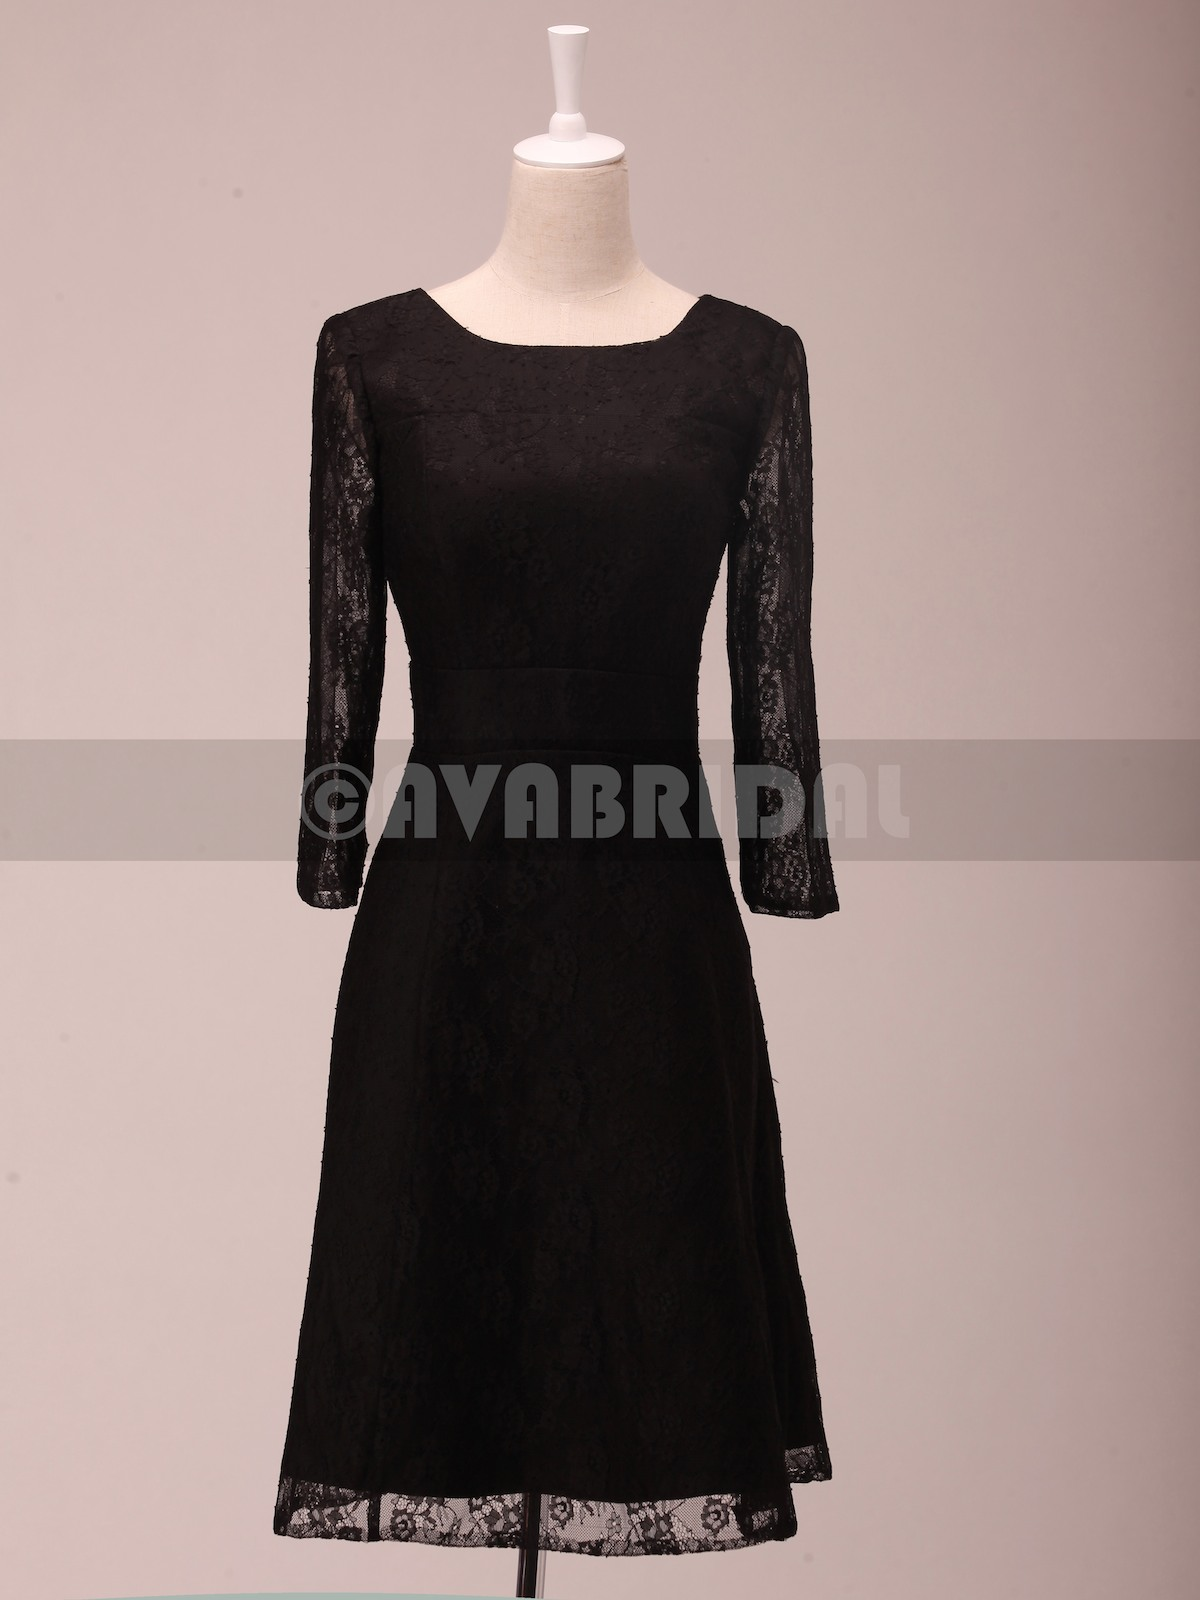 Vintage Style Formal Dress B449-Front